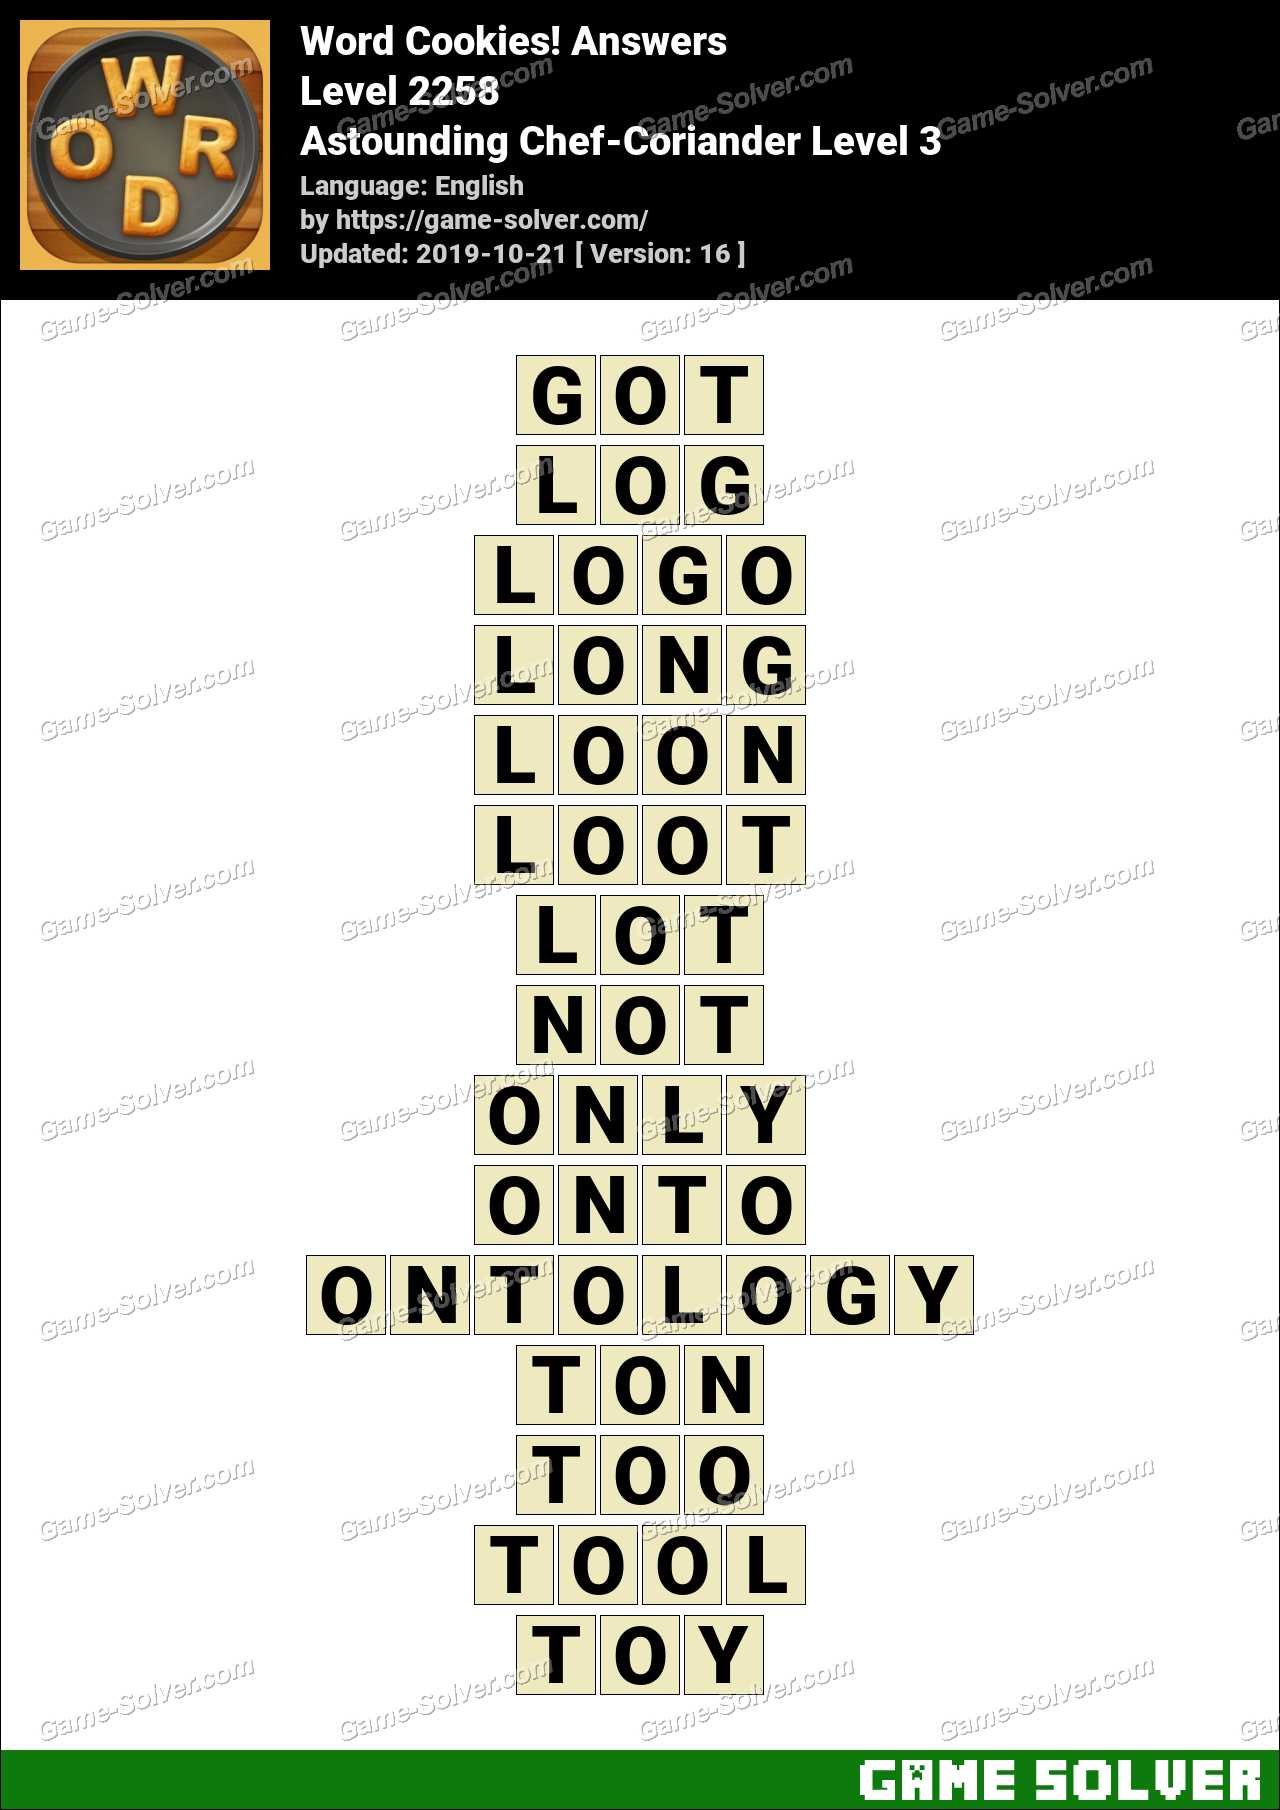 Word Cookies Astounding Chef-Coriander Level 3 Answers